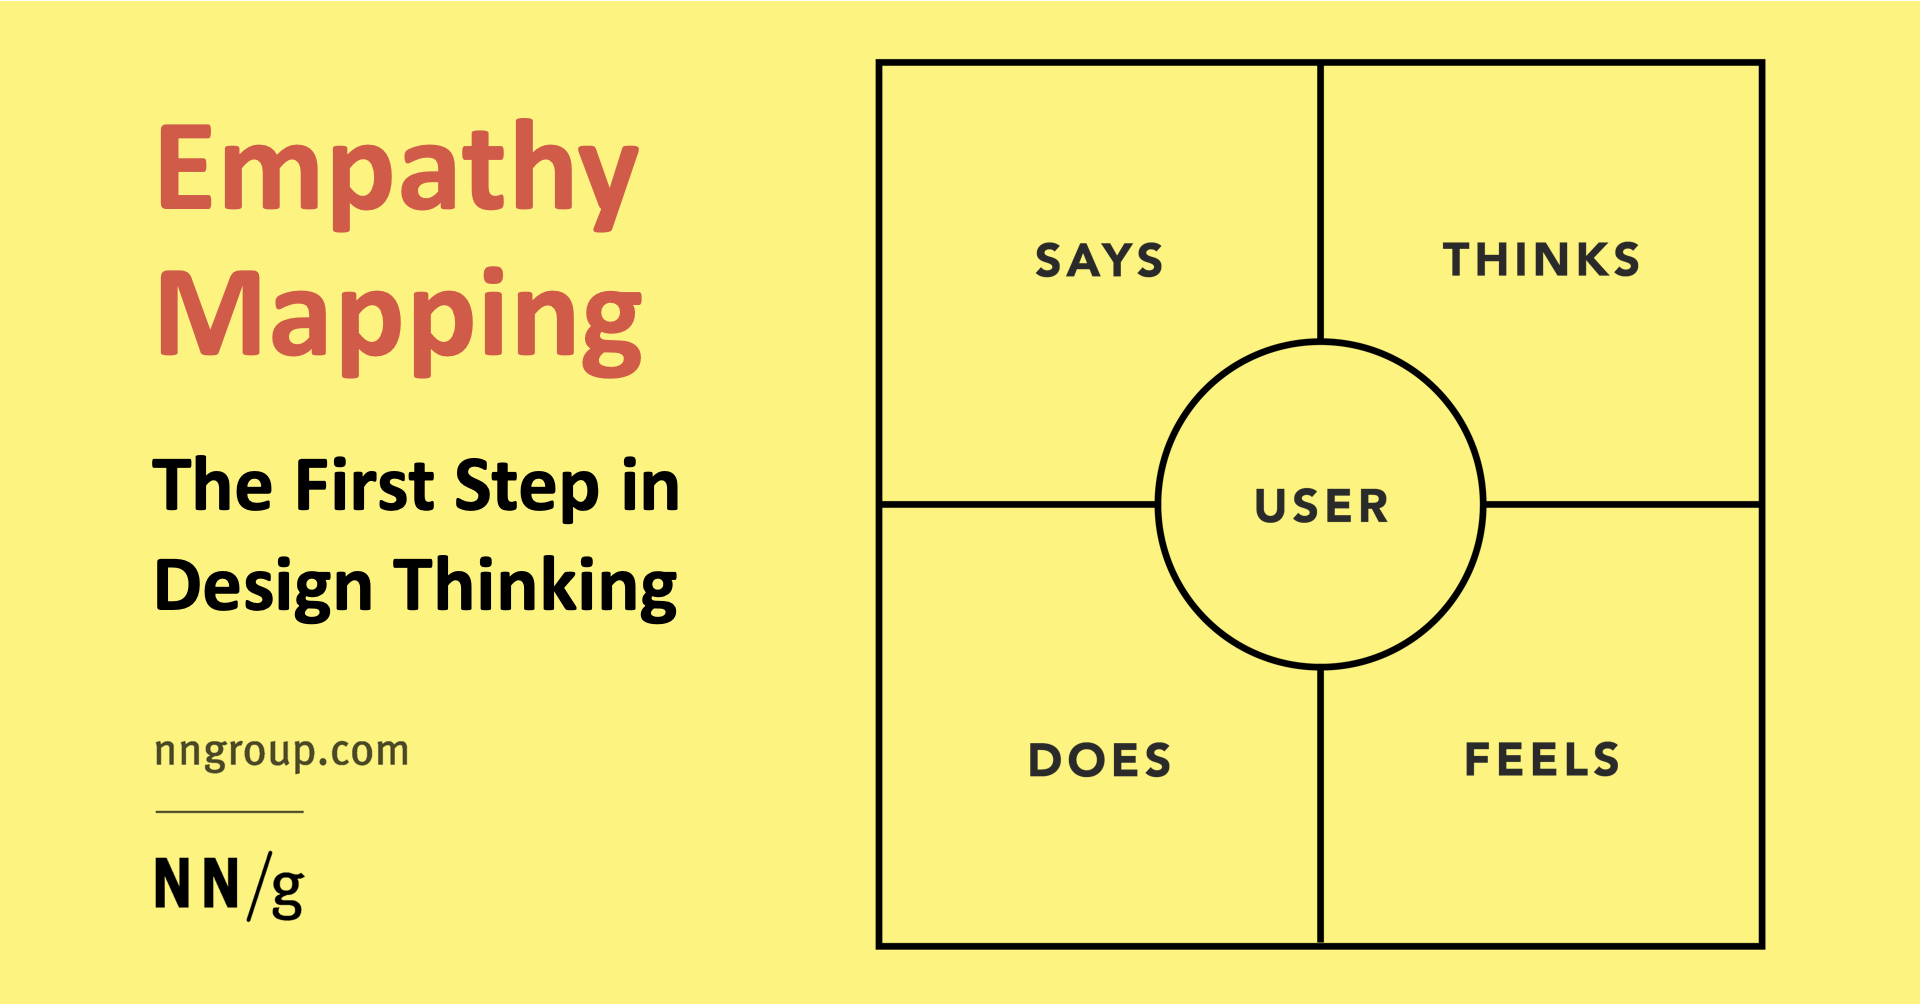 Empathy Mapping The First Step in Design Thinking